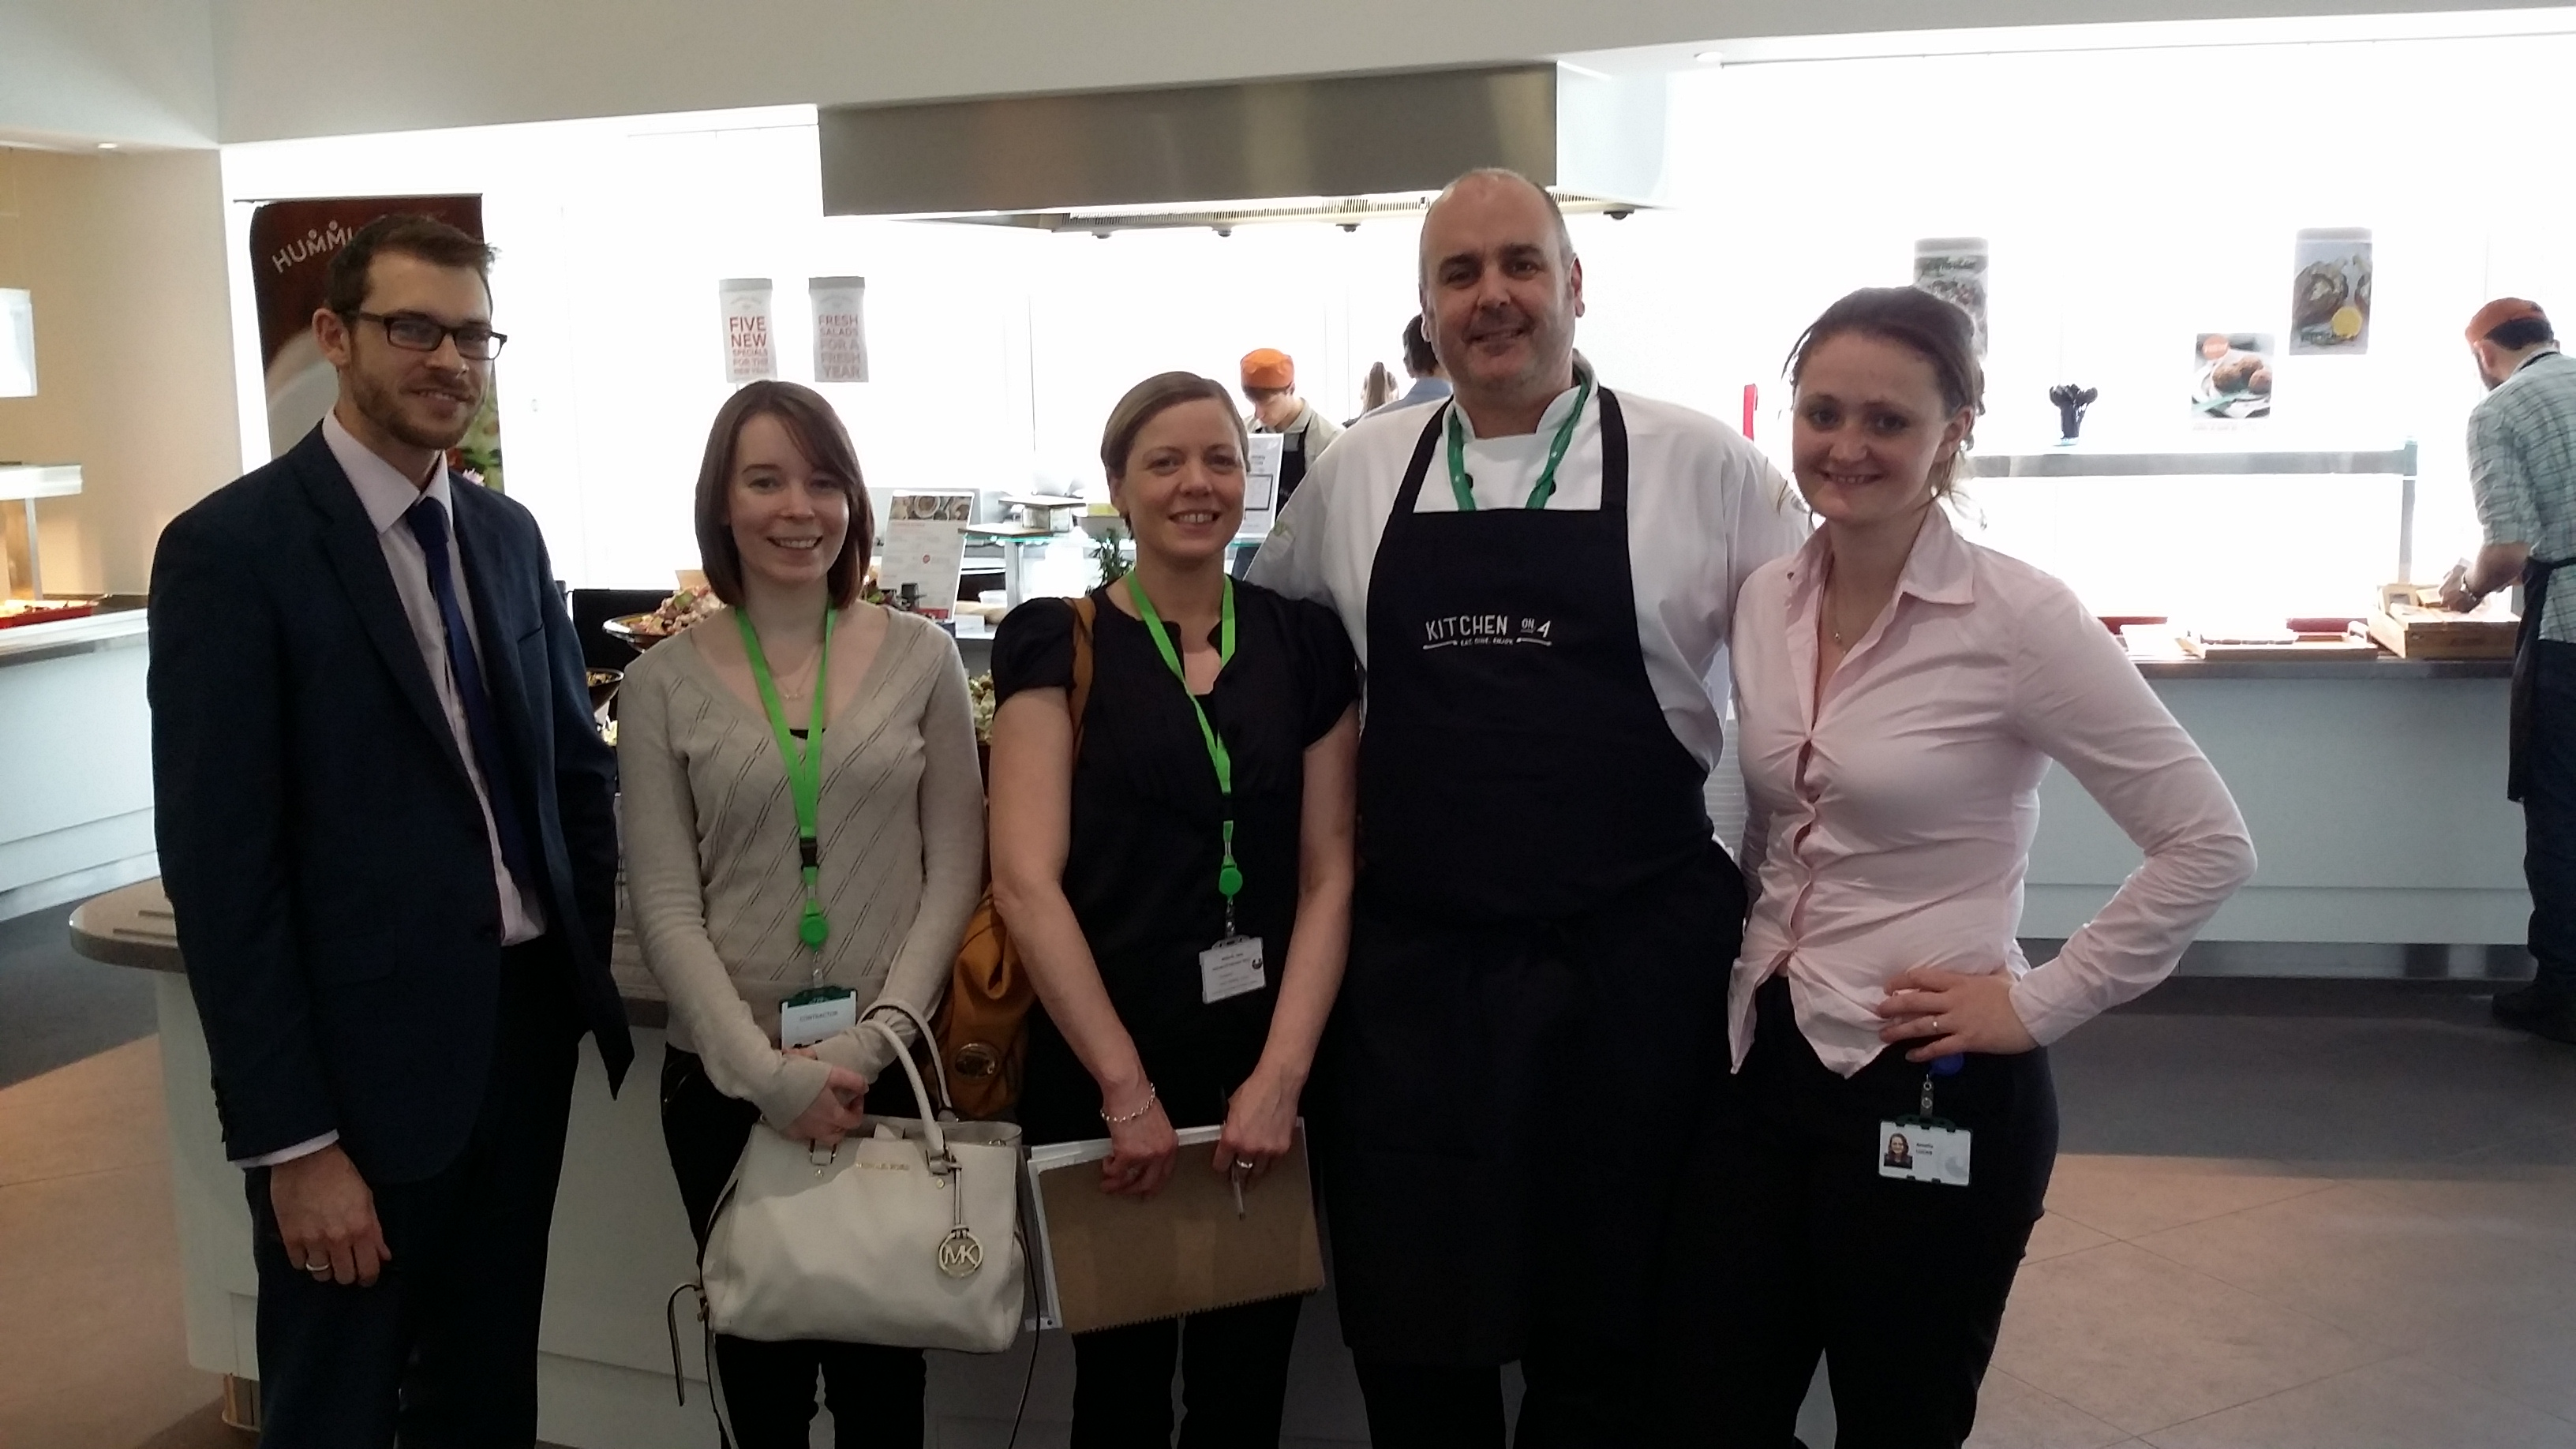 Ed, Jess, Jane, Chef & Amelia